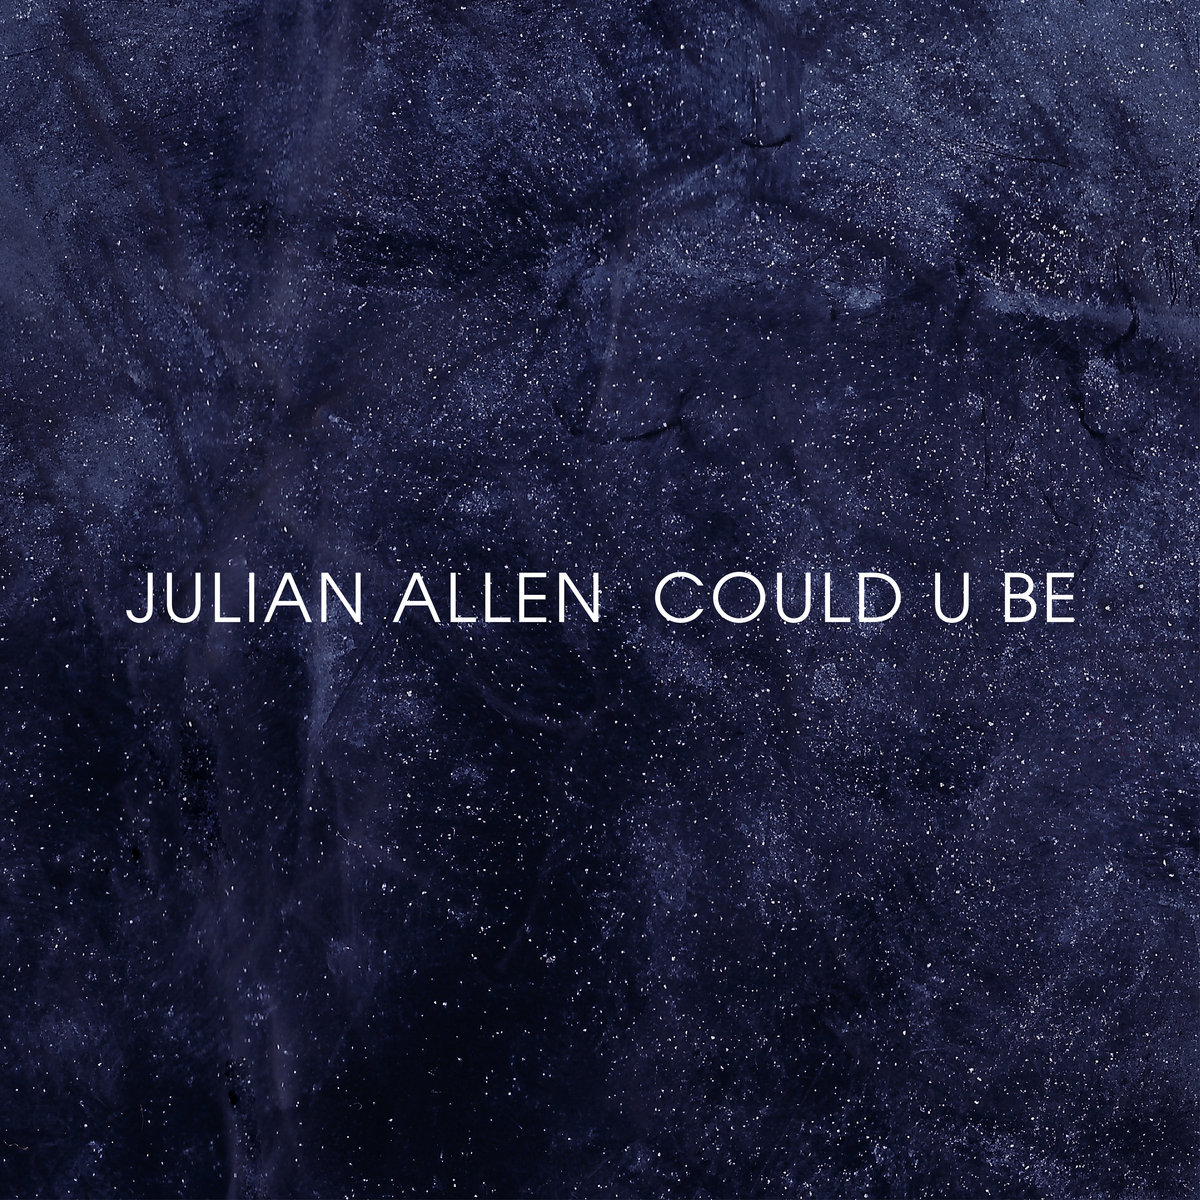 Julian Allen Could U Be.jpg